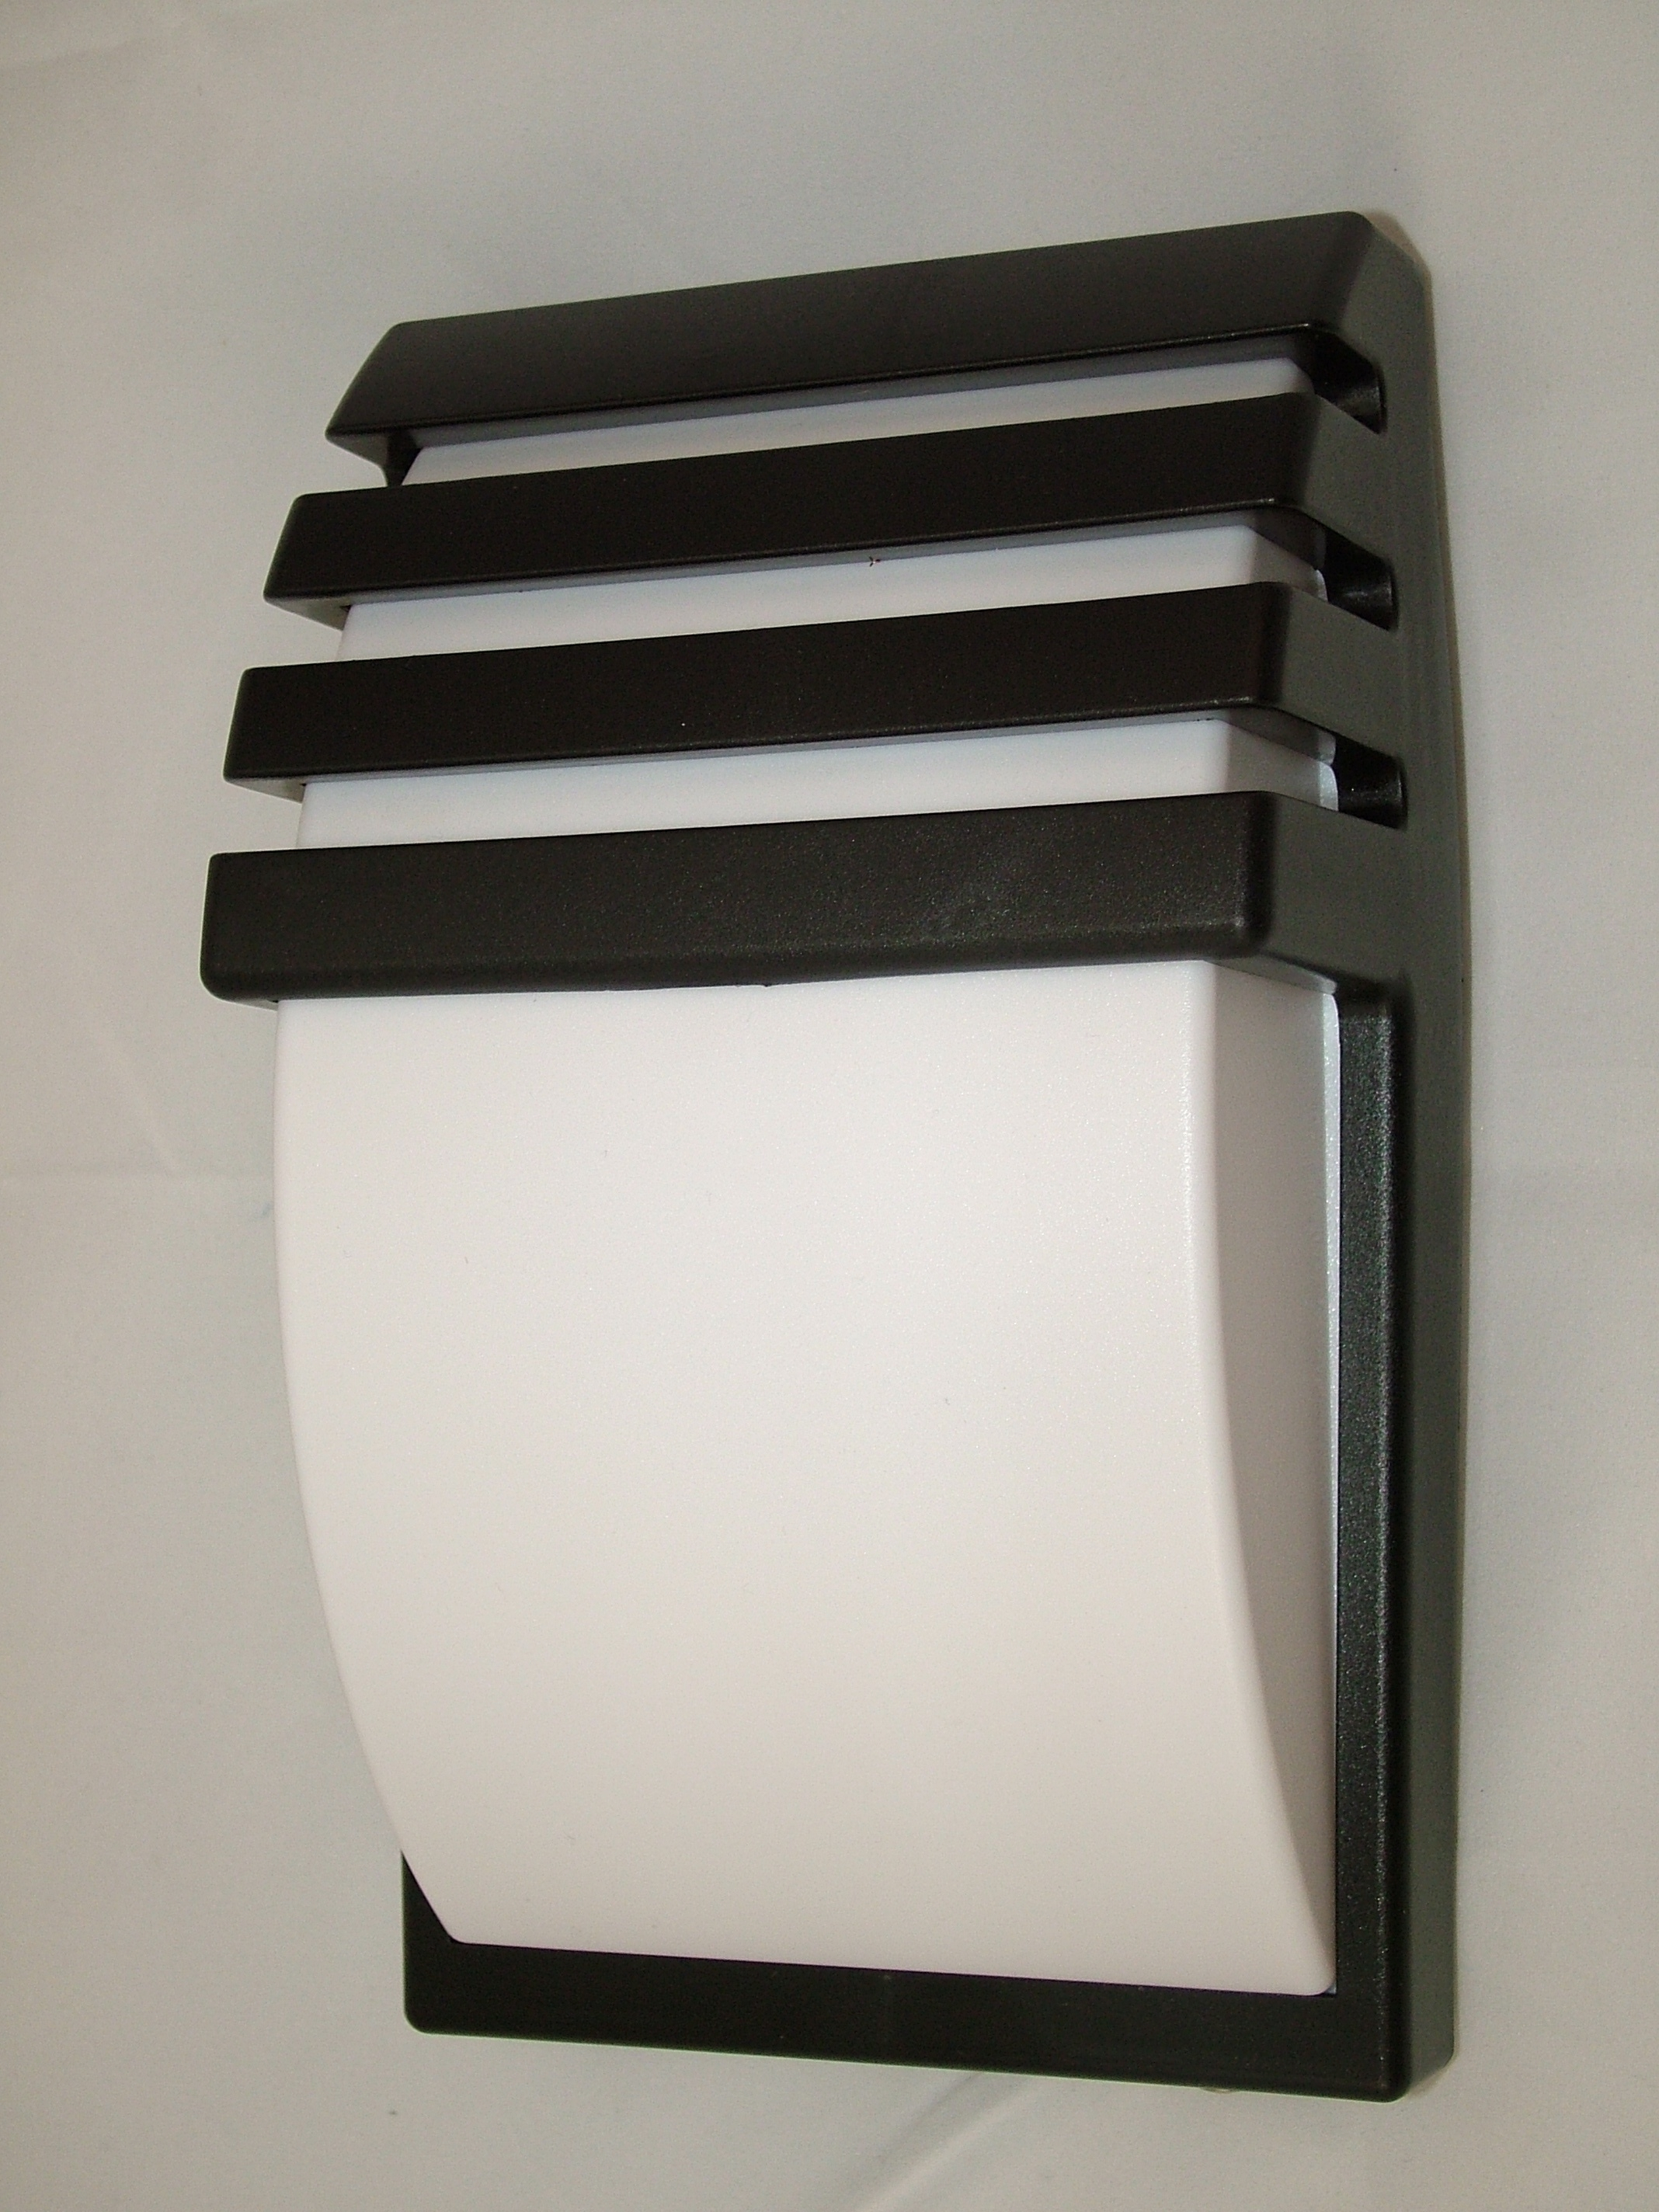 Best And Newest Large Outdoor Modern Wall Mounted Lighting Fixtures With Black Pertaining To Large Outdoor Wall Light Fixtures (Gallery 15 of 20)